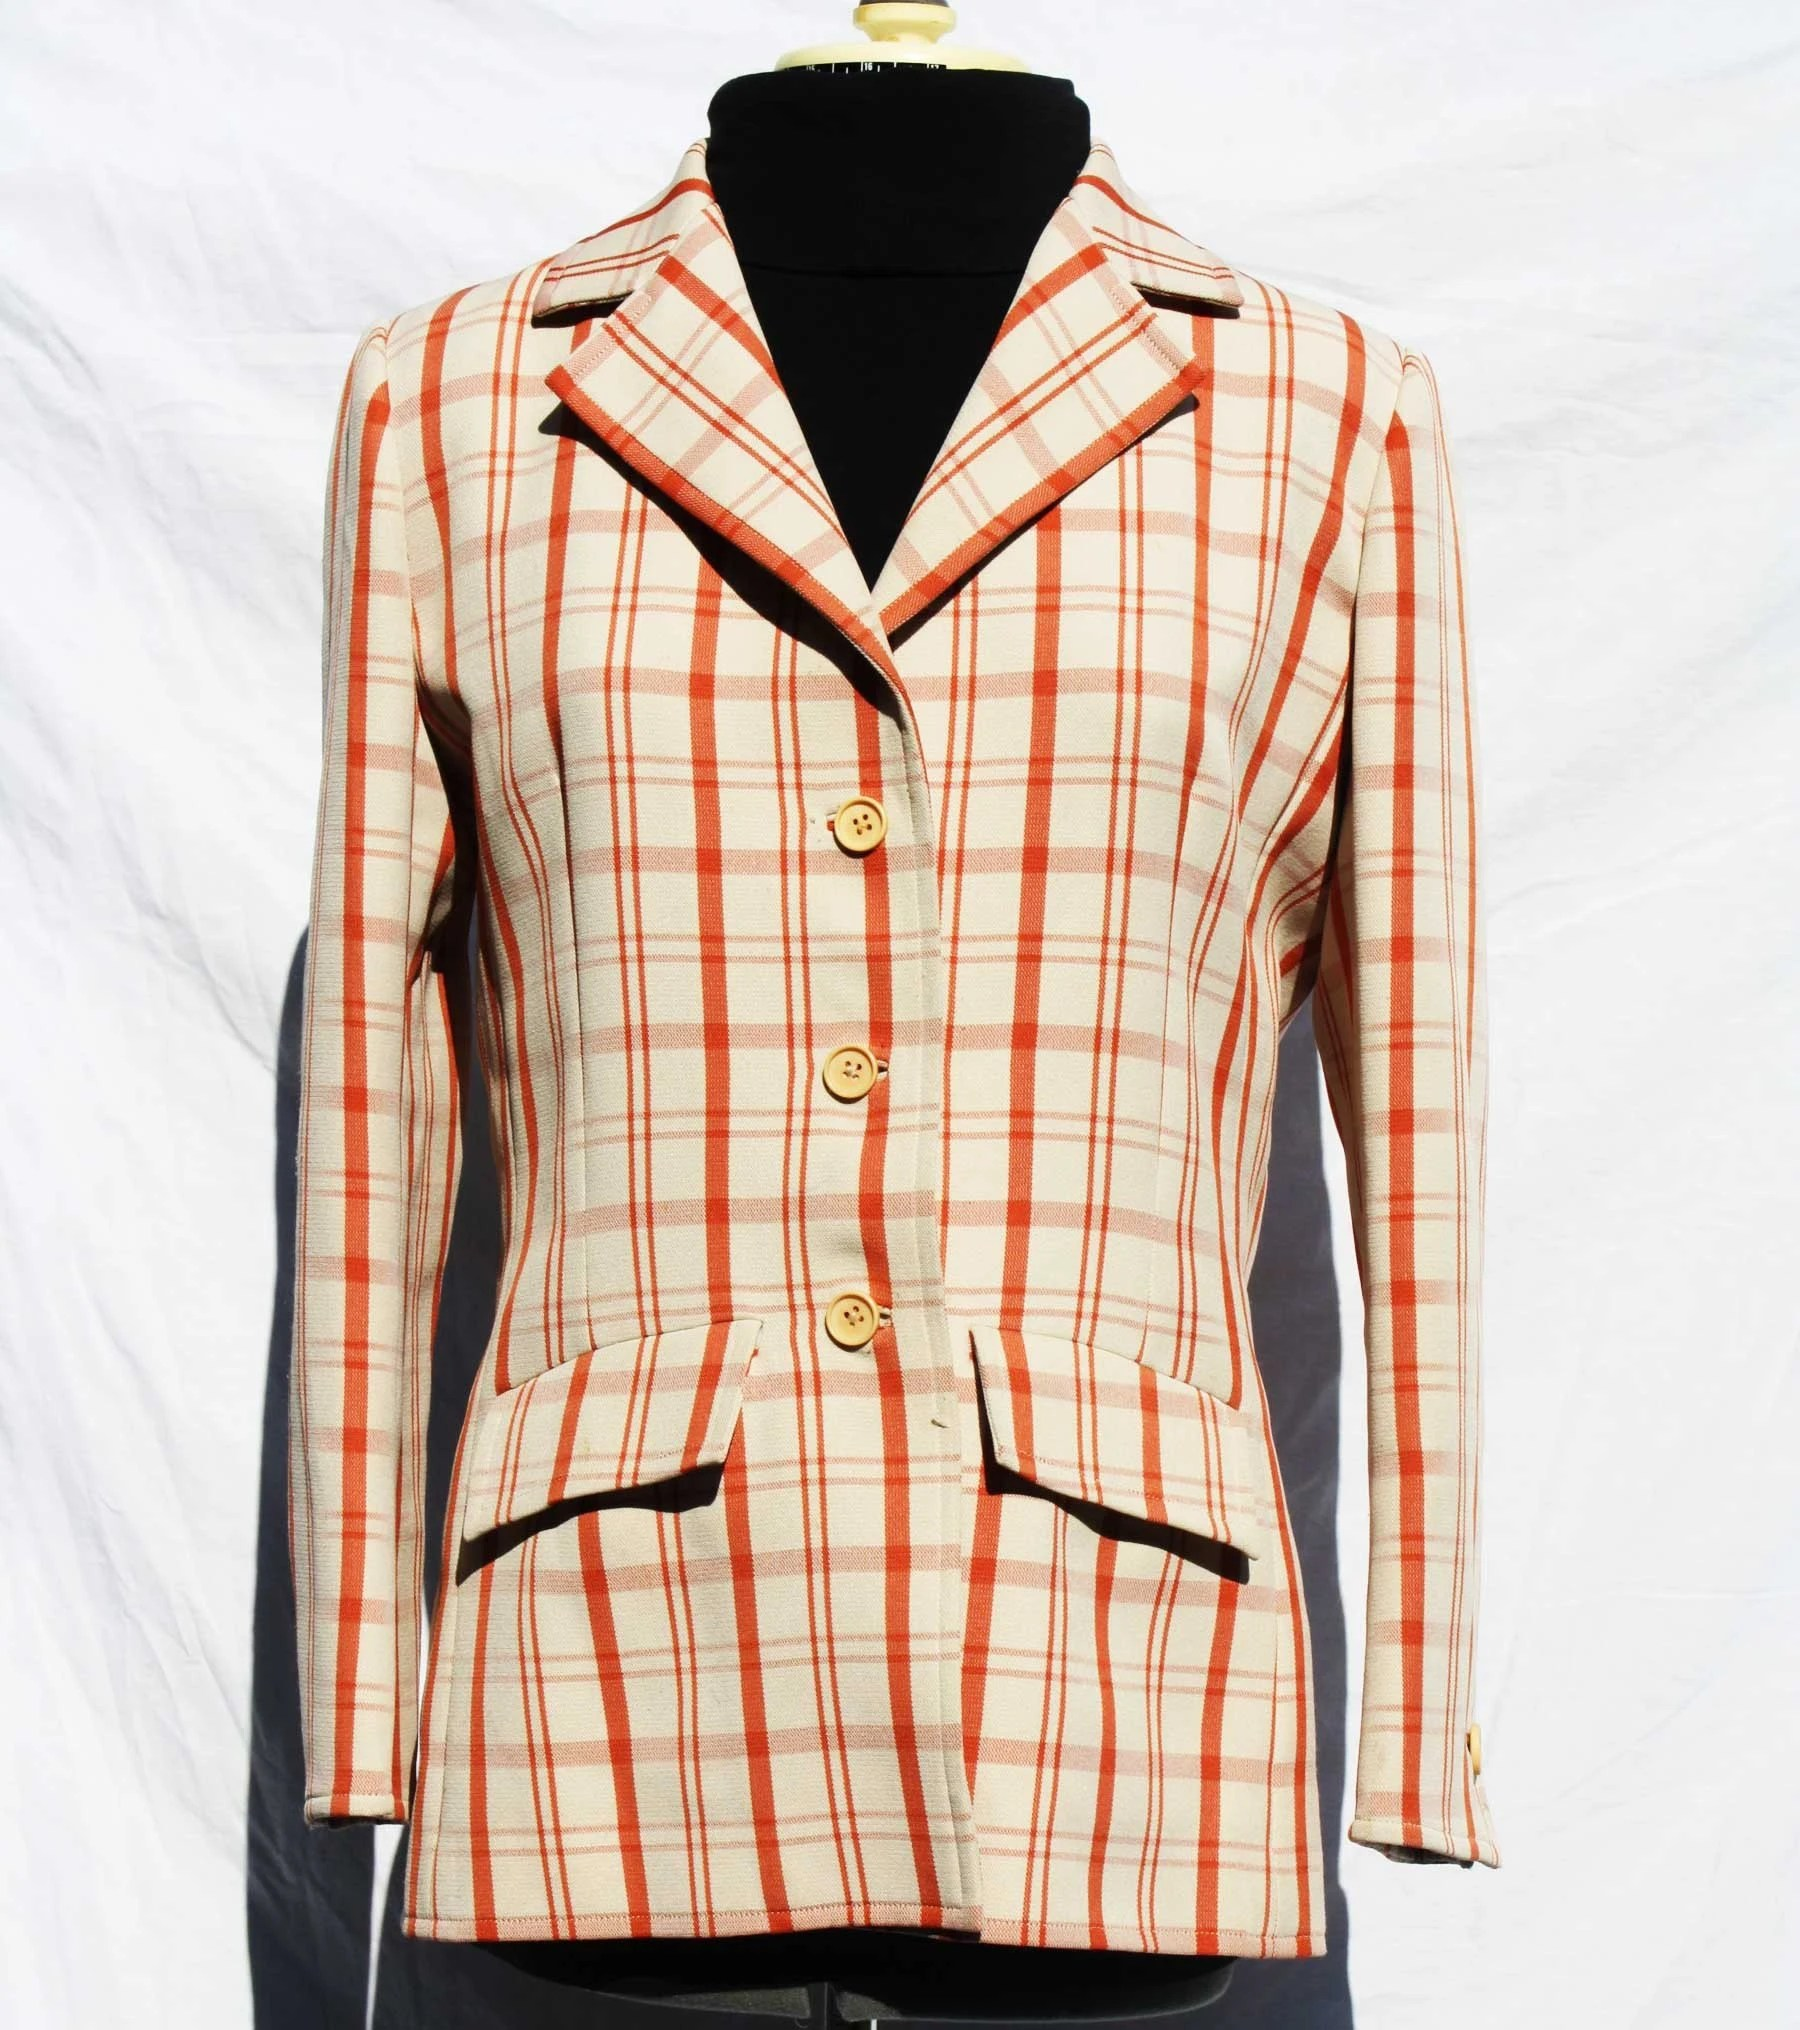 Vintage Ladies Orange Plaid Blazer